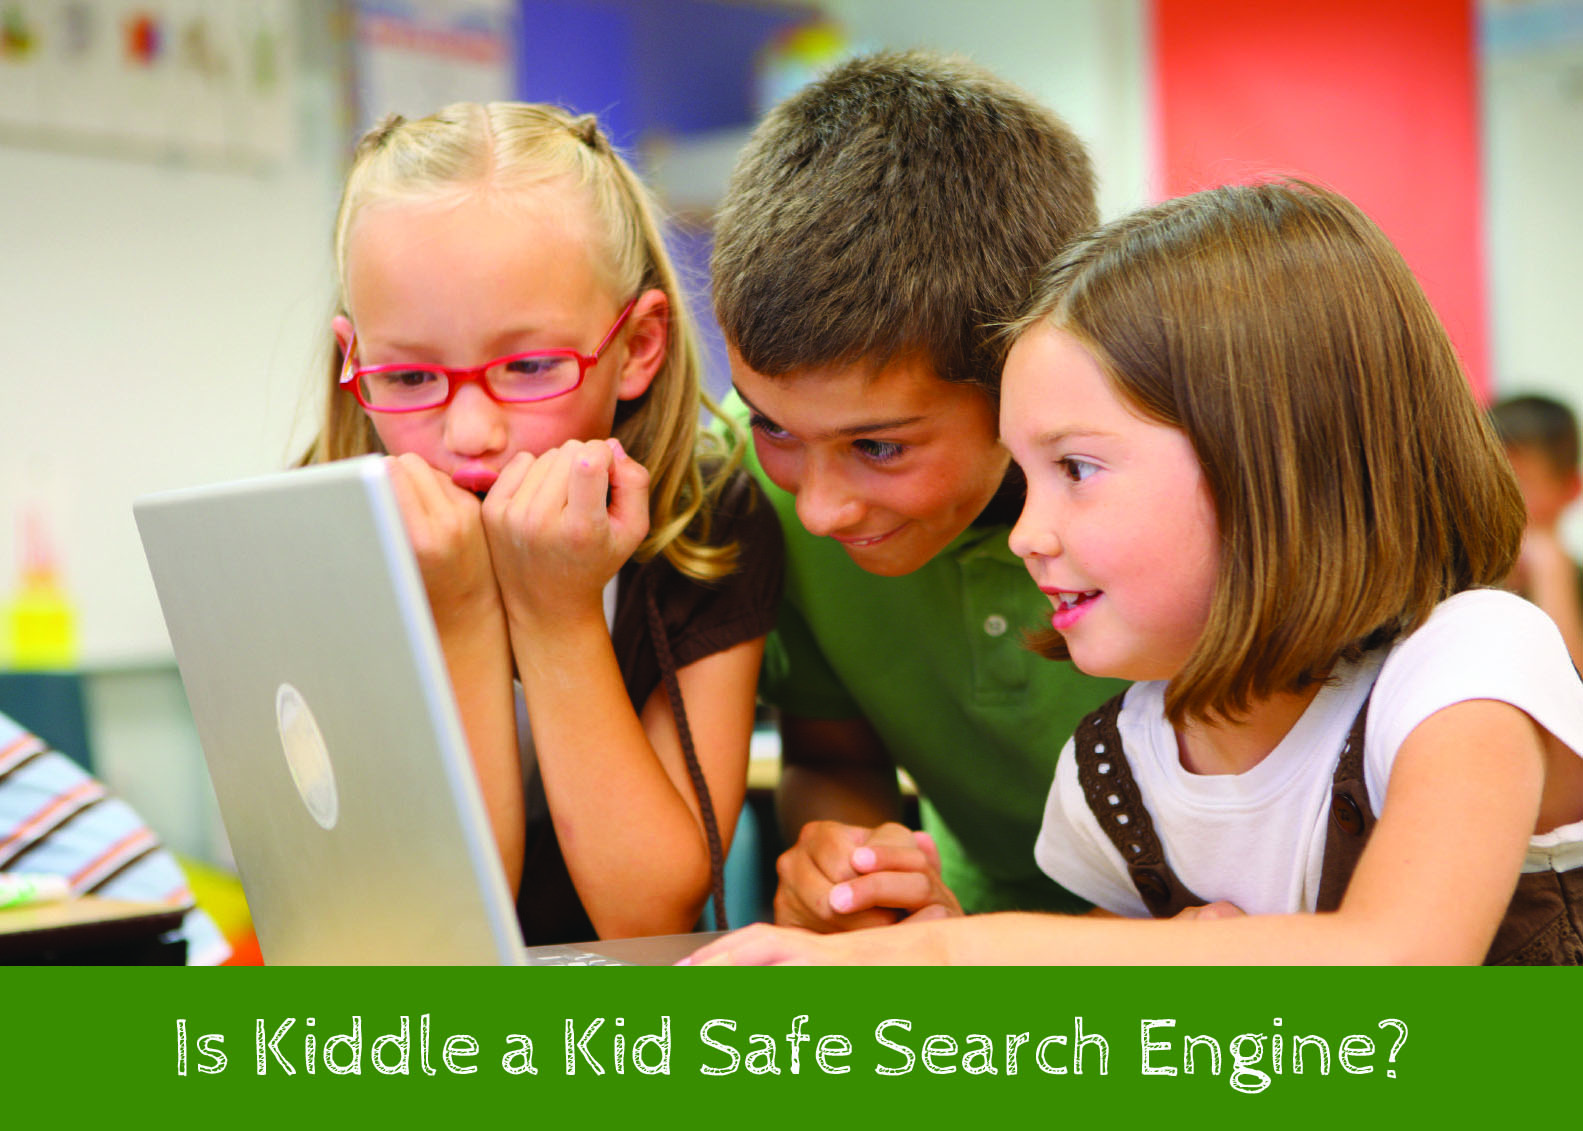 2 Kid Is Kiddle A Safe Search Engine For Kids Review And Analysis